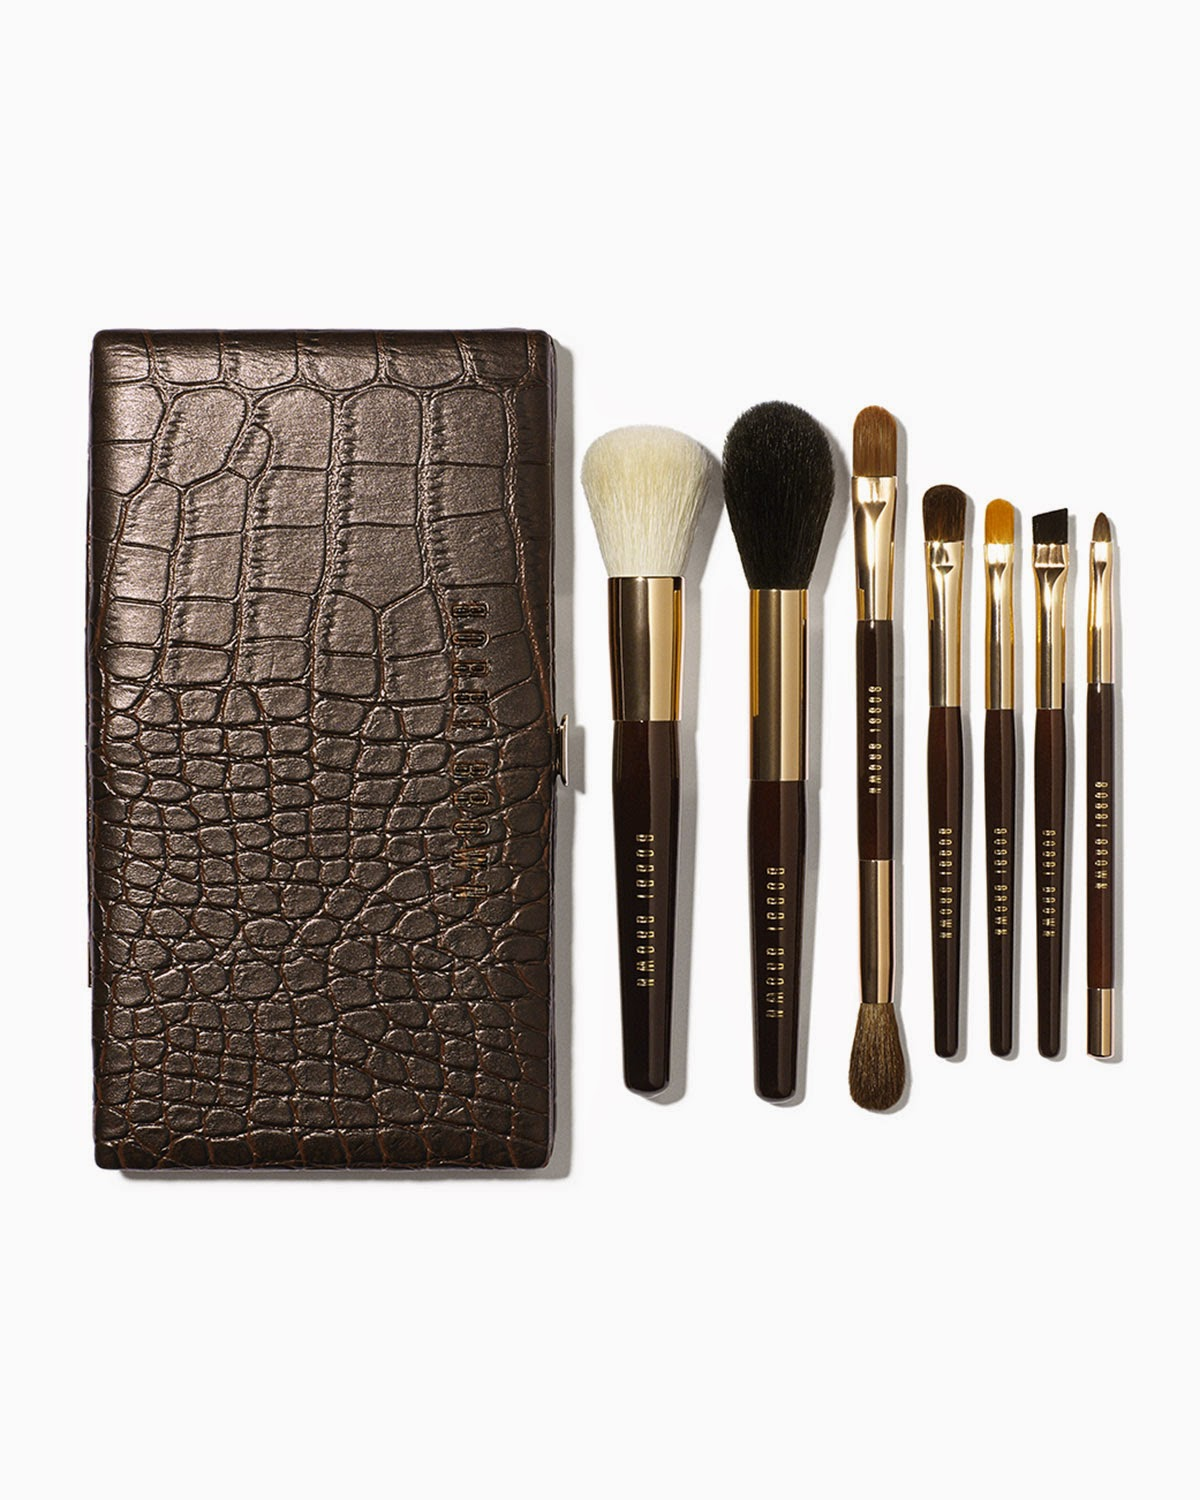 Bobbi Brown Travel Brush Set